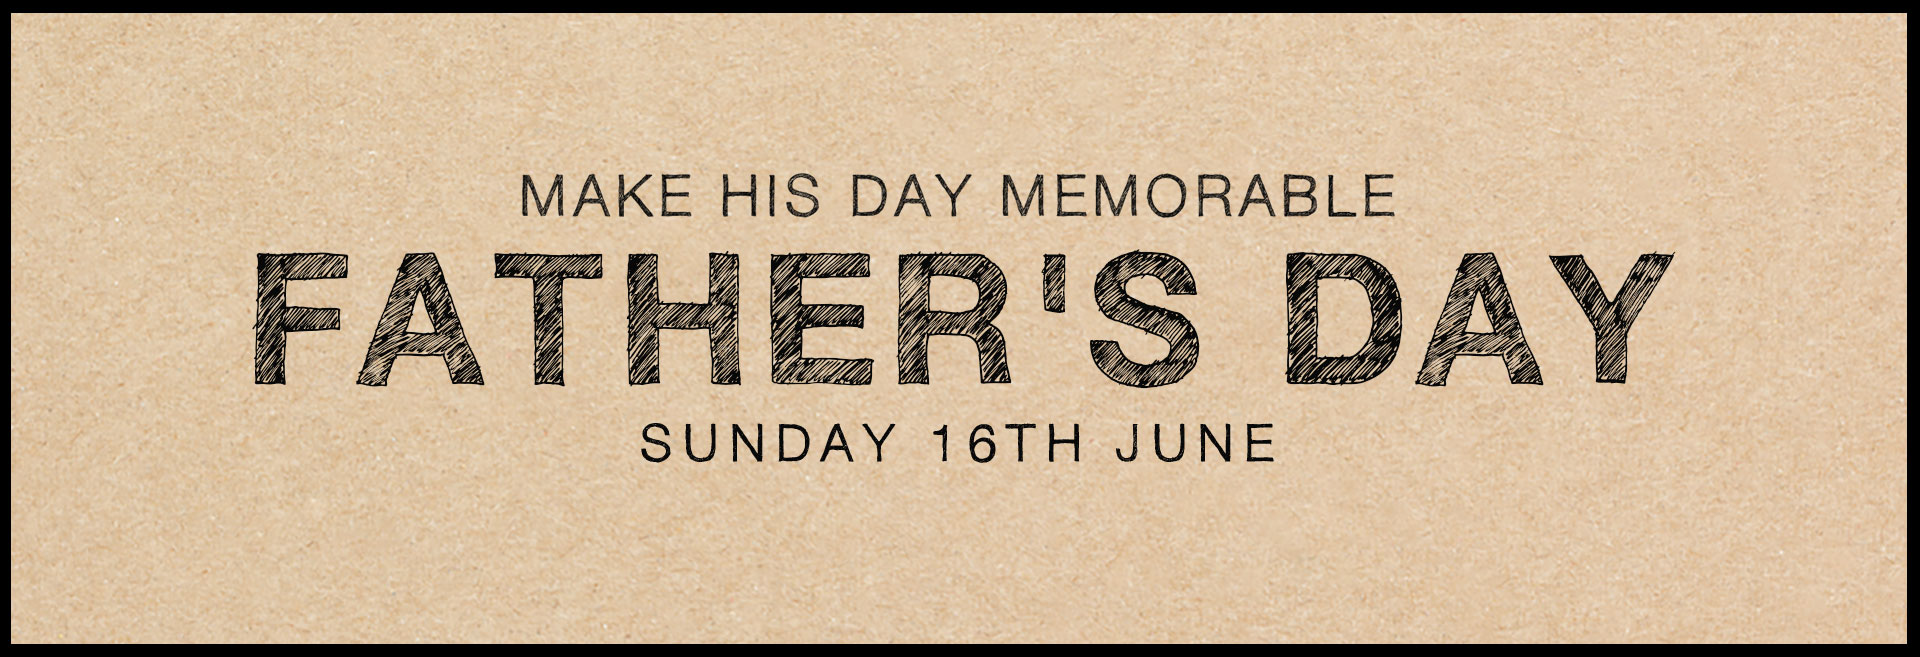 Father's Day at The White Horse Hotel